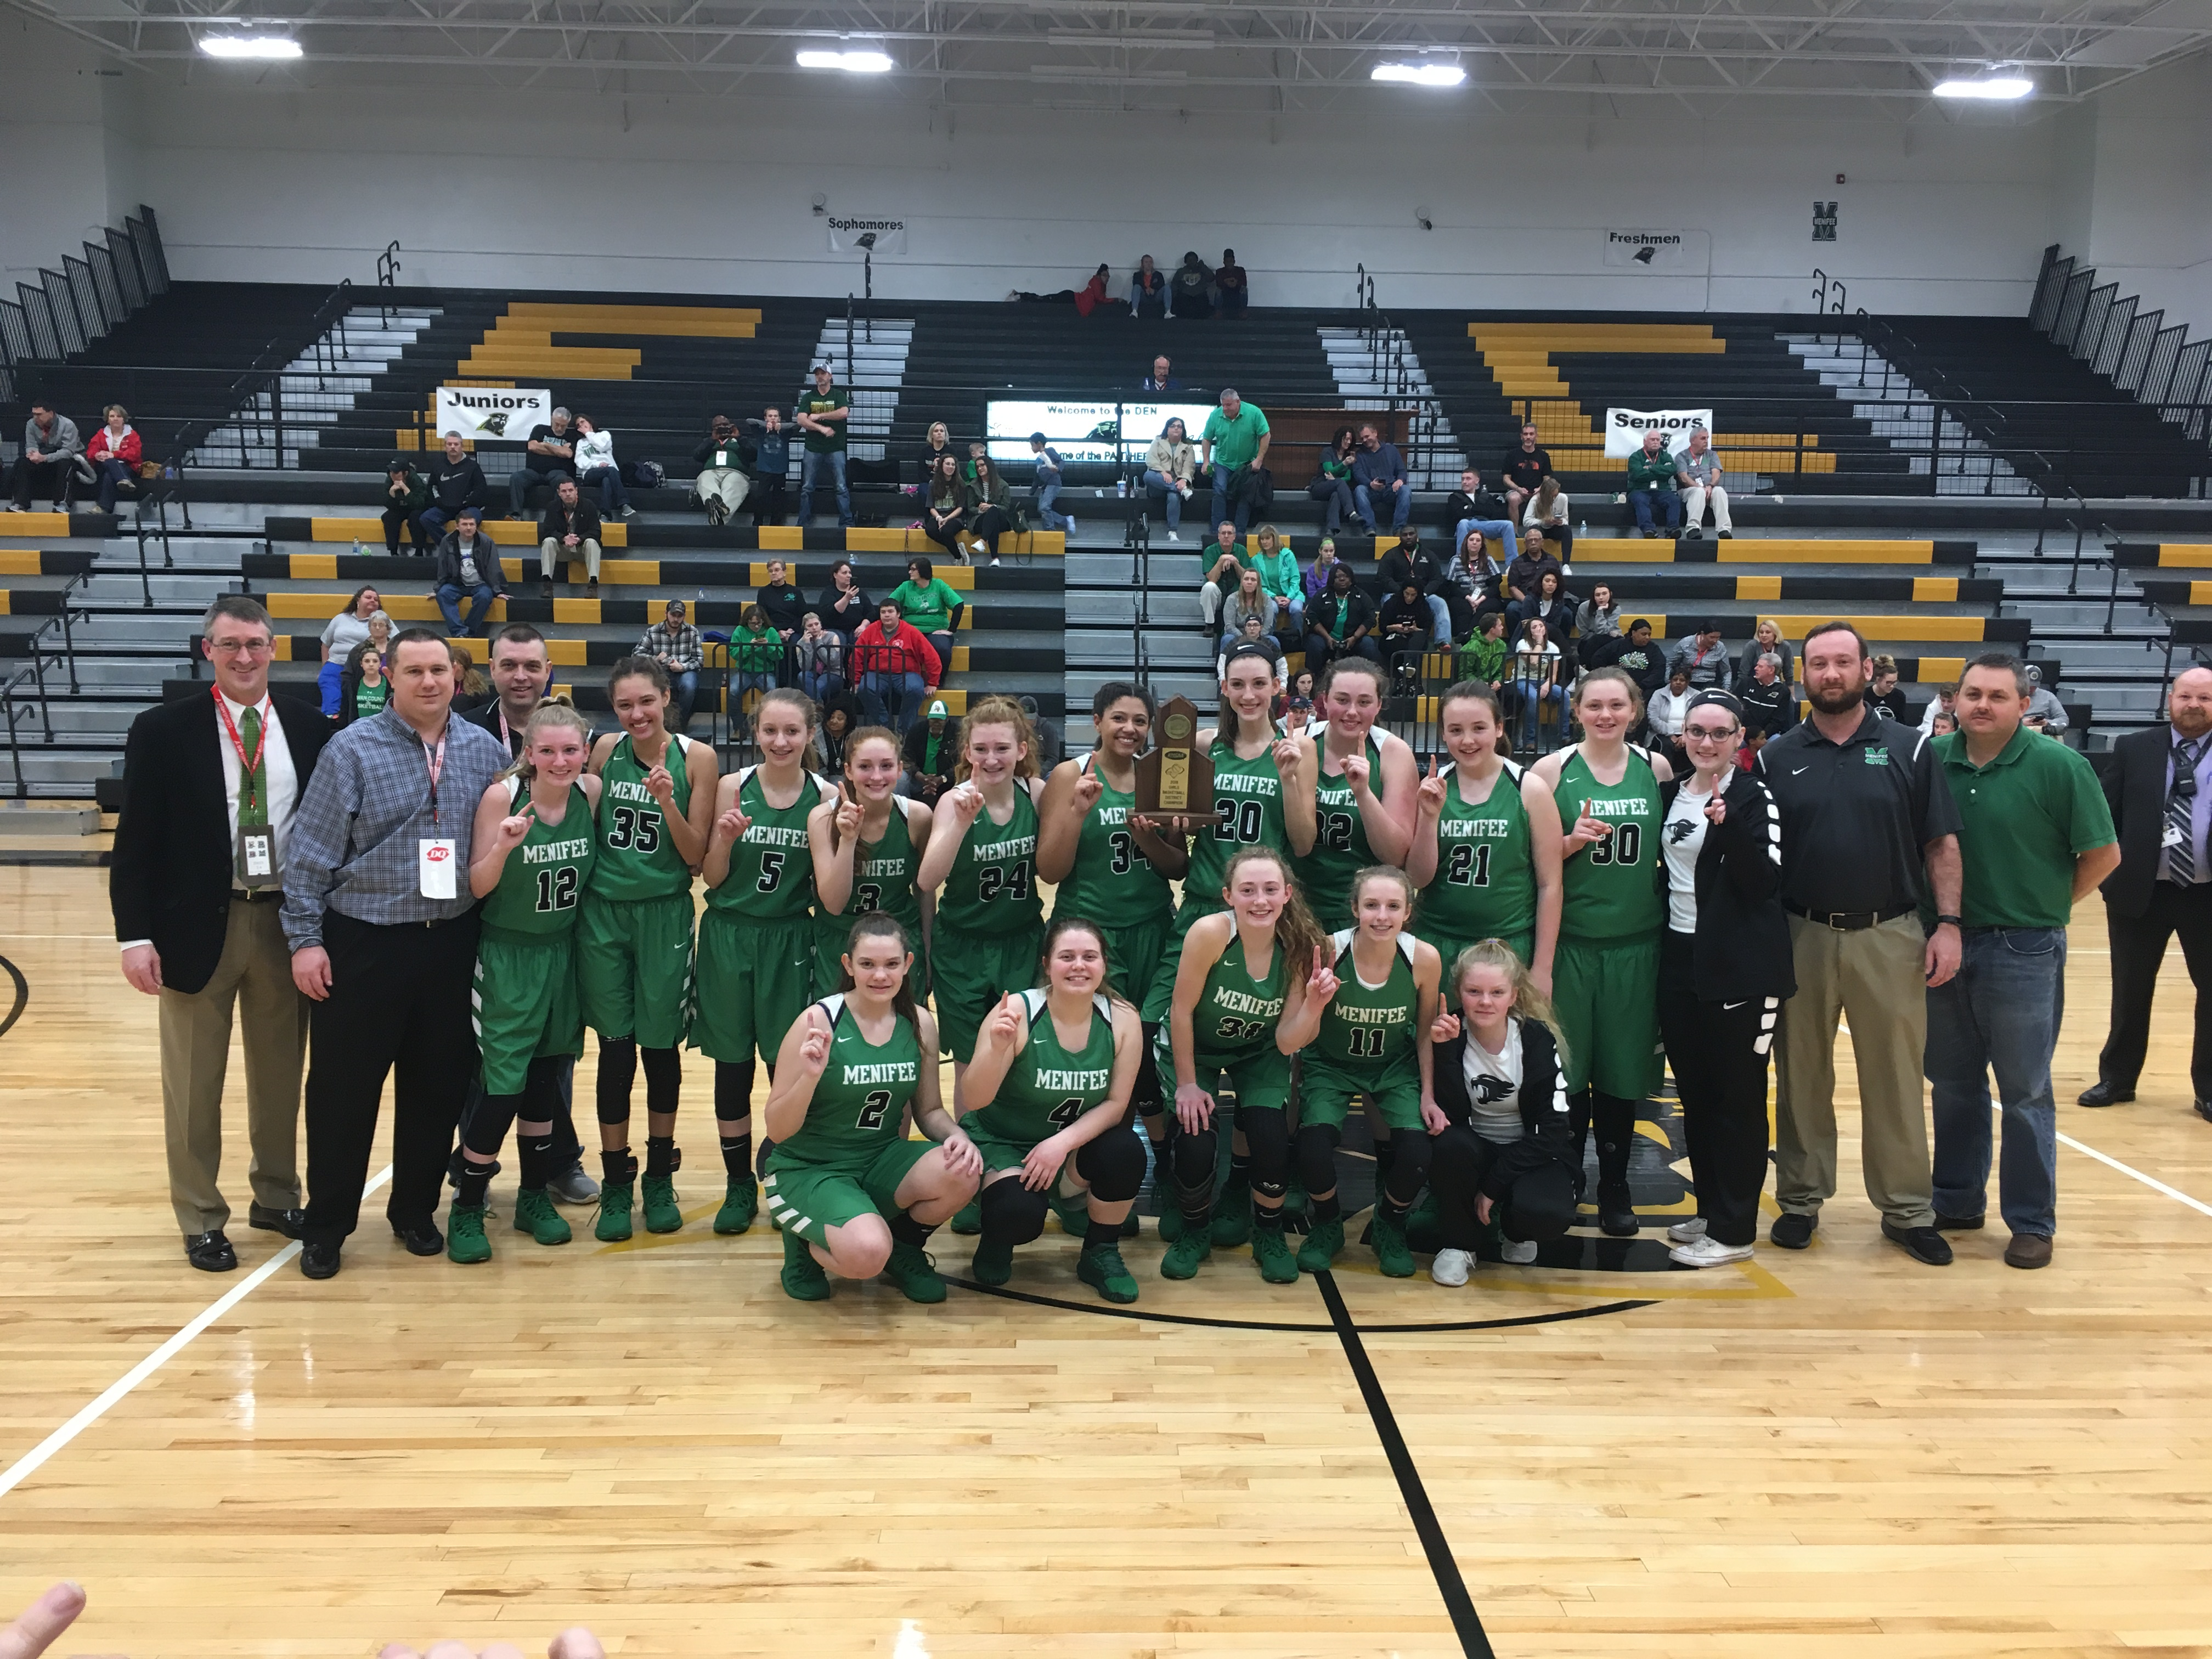 MCHS Ladycats 2018 61st District Champions